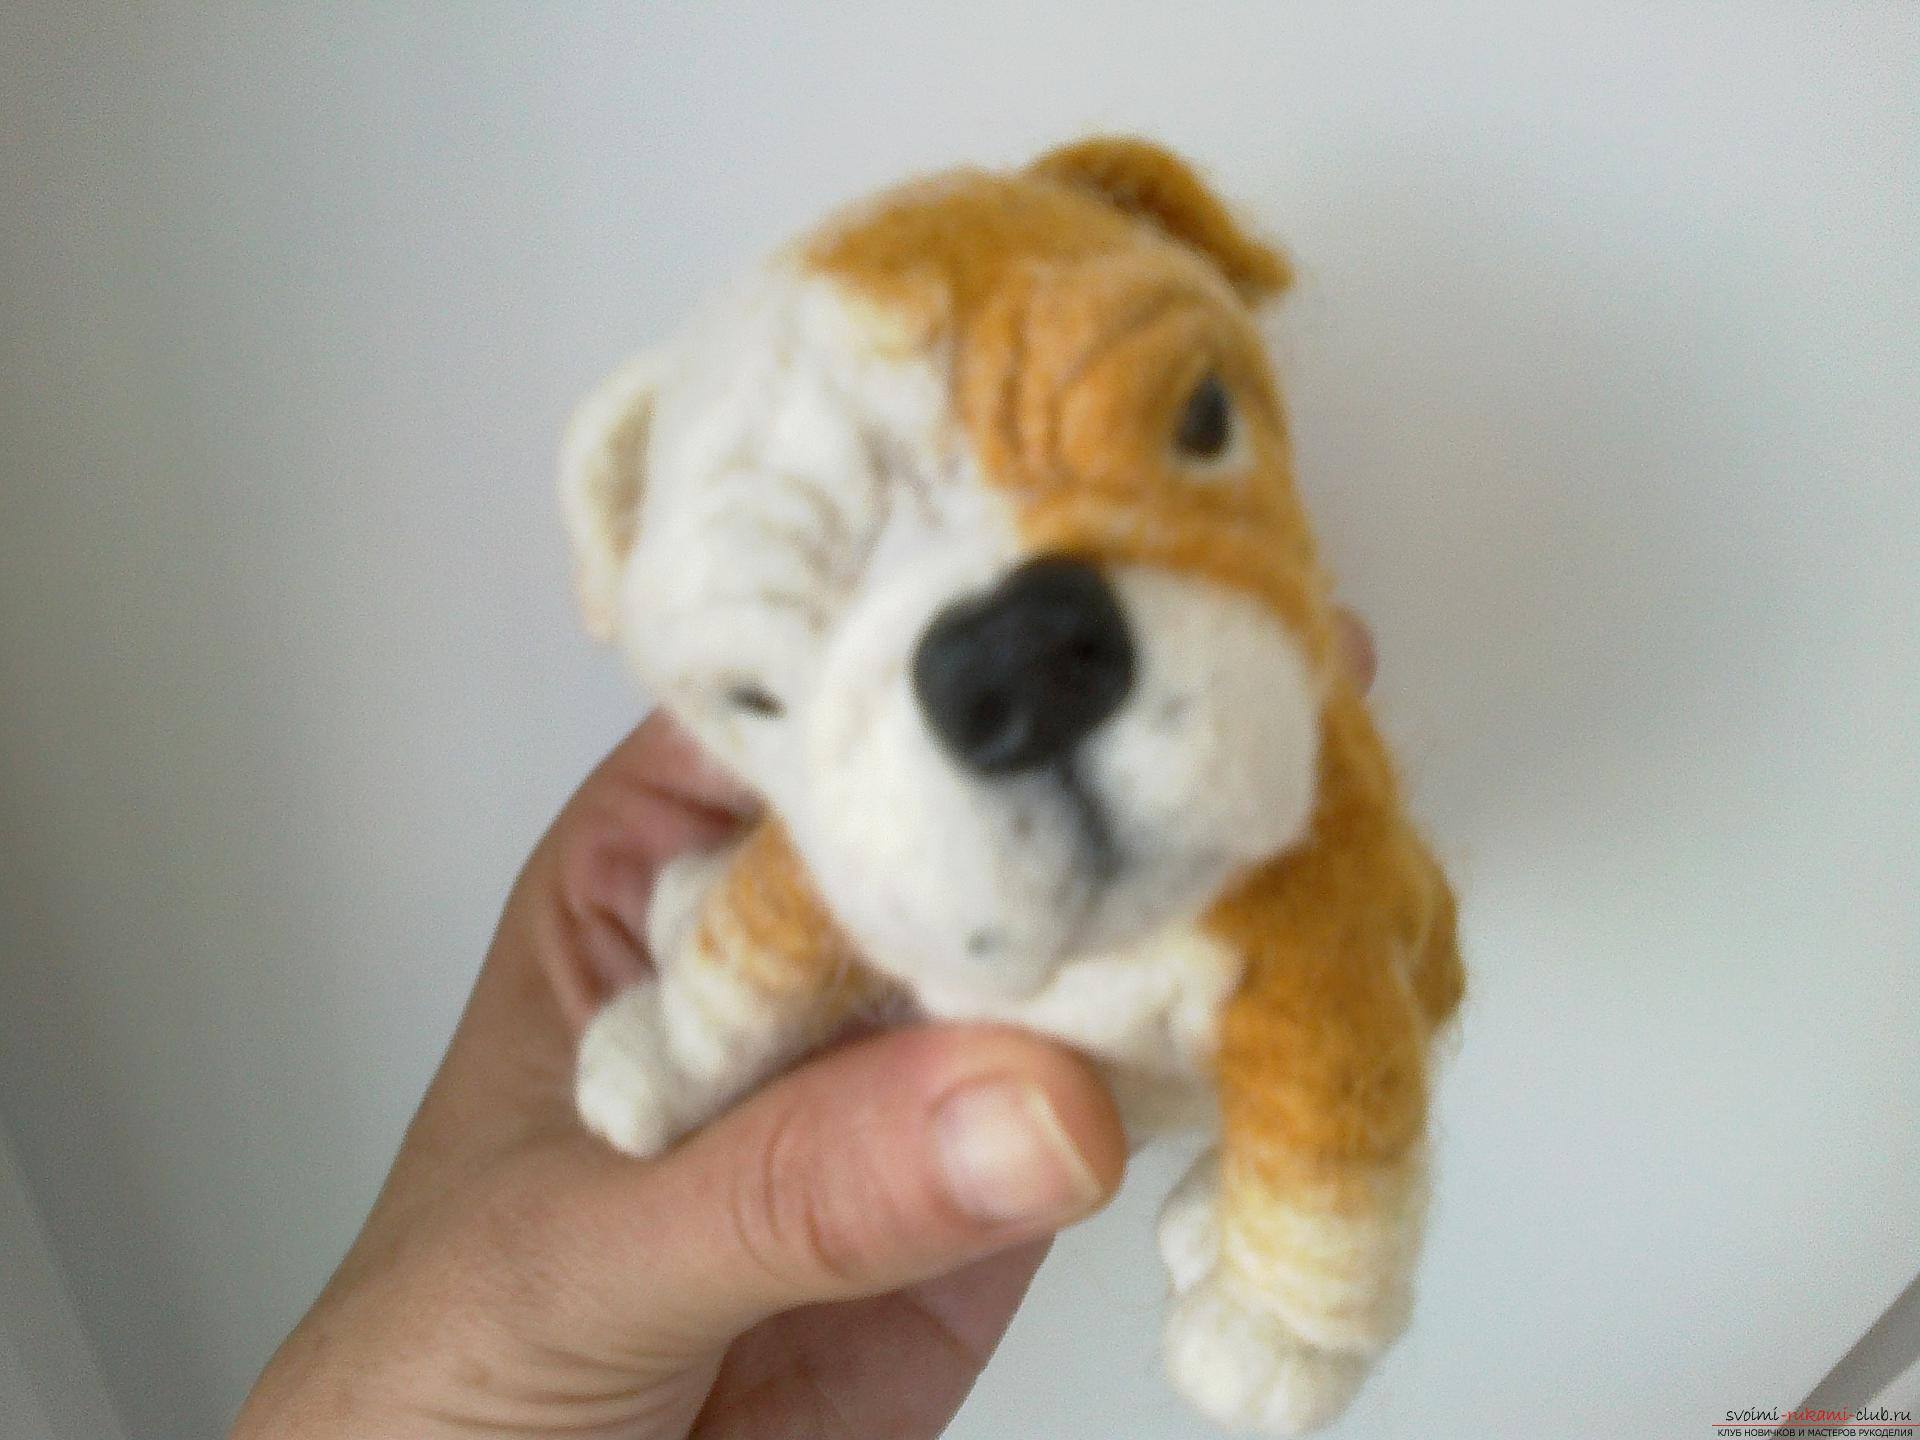 Master class on felting English Bulldog toys made of wool as a gift. Photo Number 9